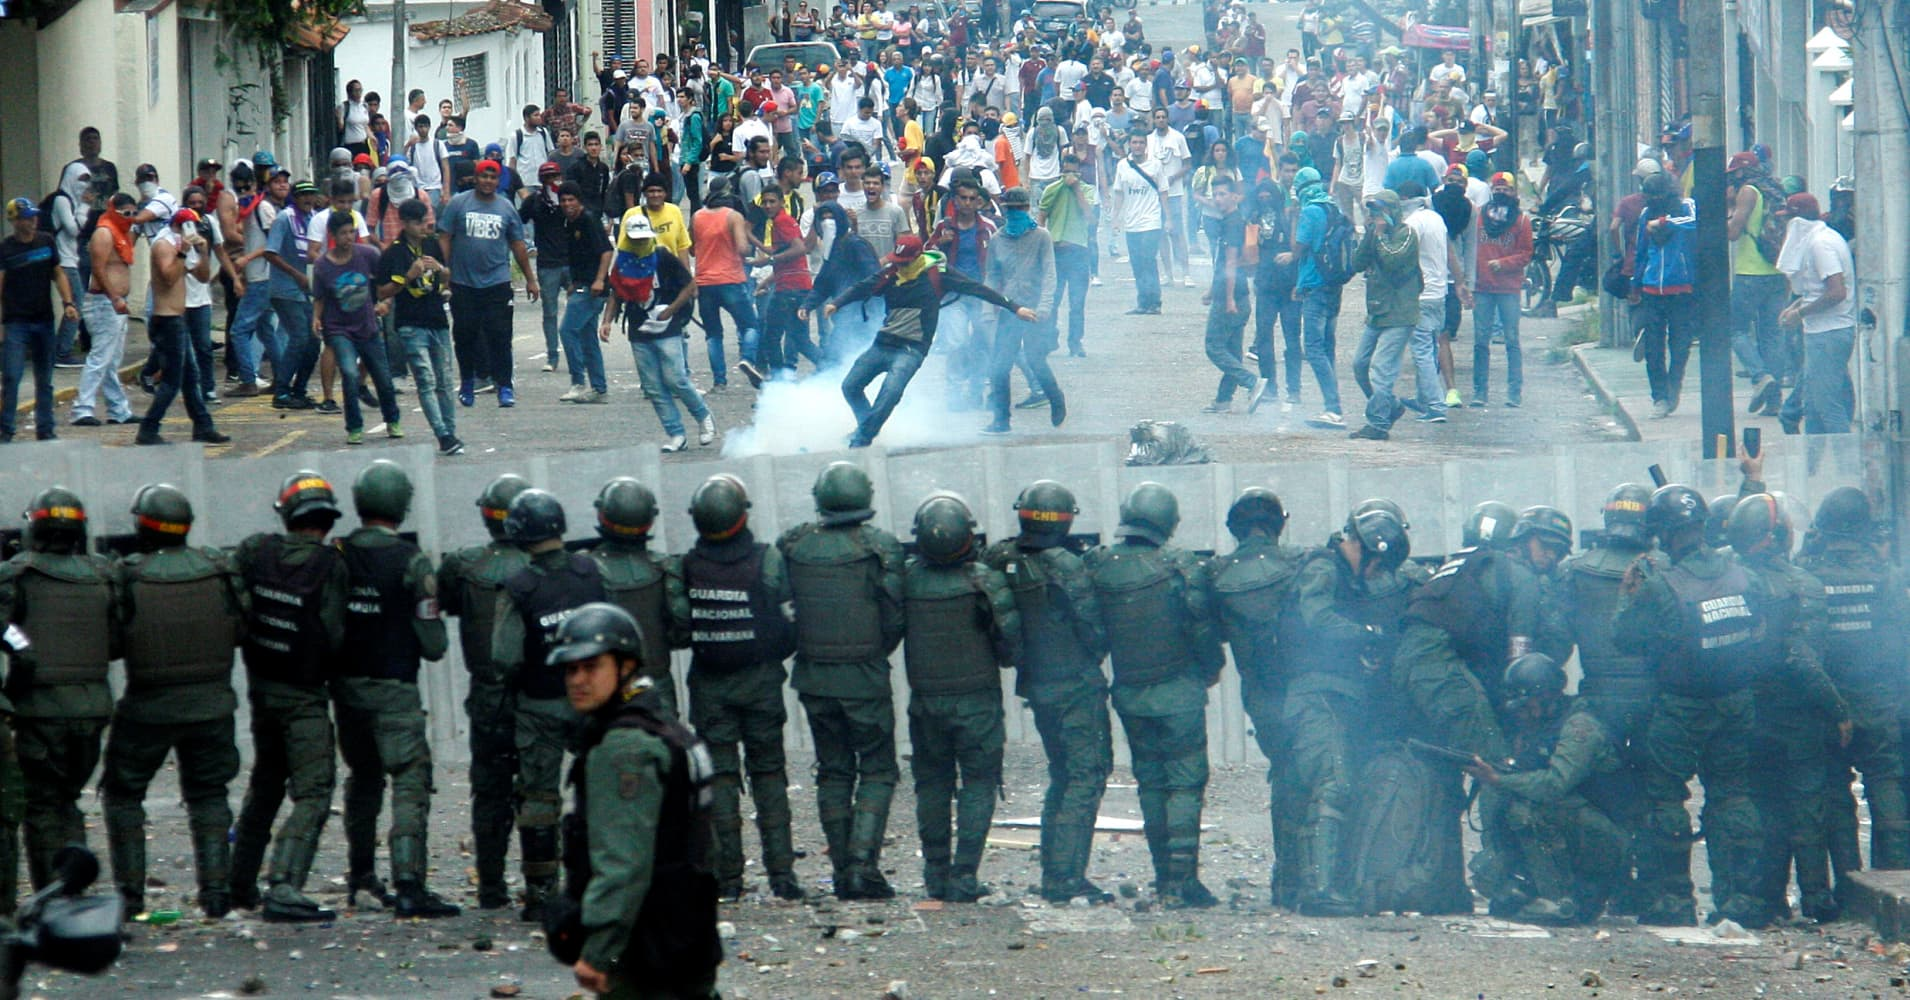 Venezuela's problems get worse as protests and riots ...